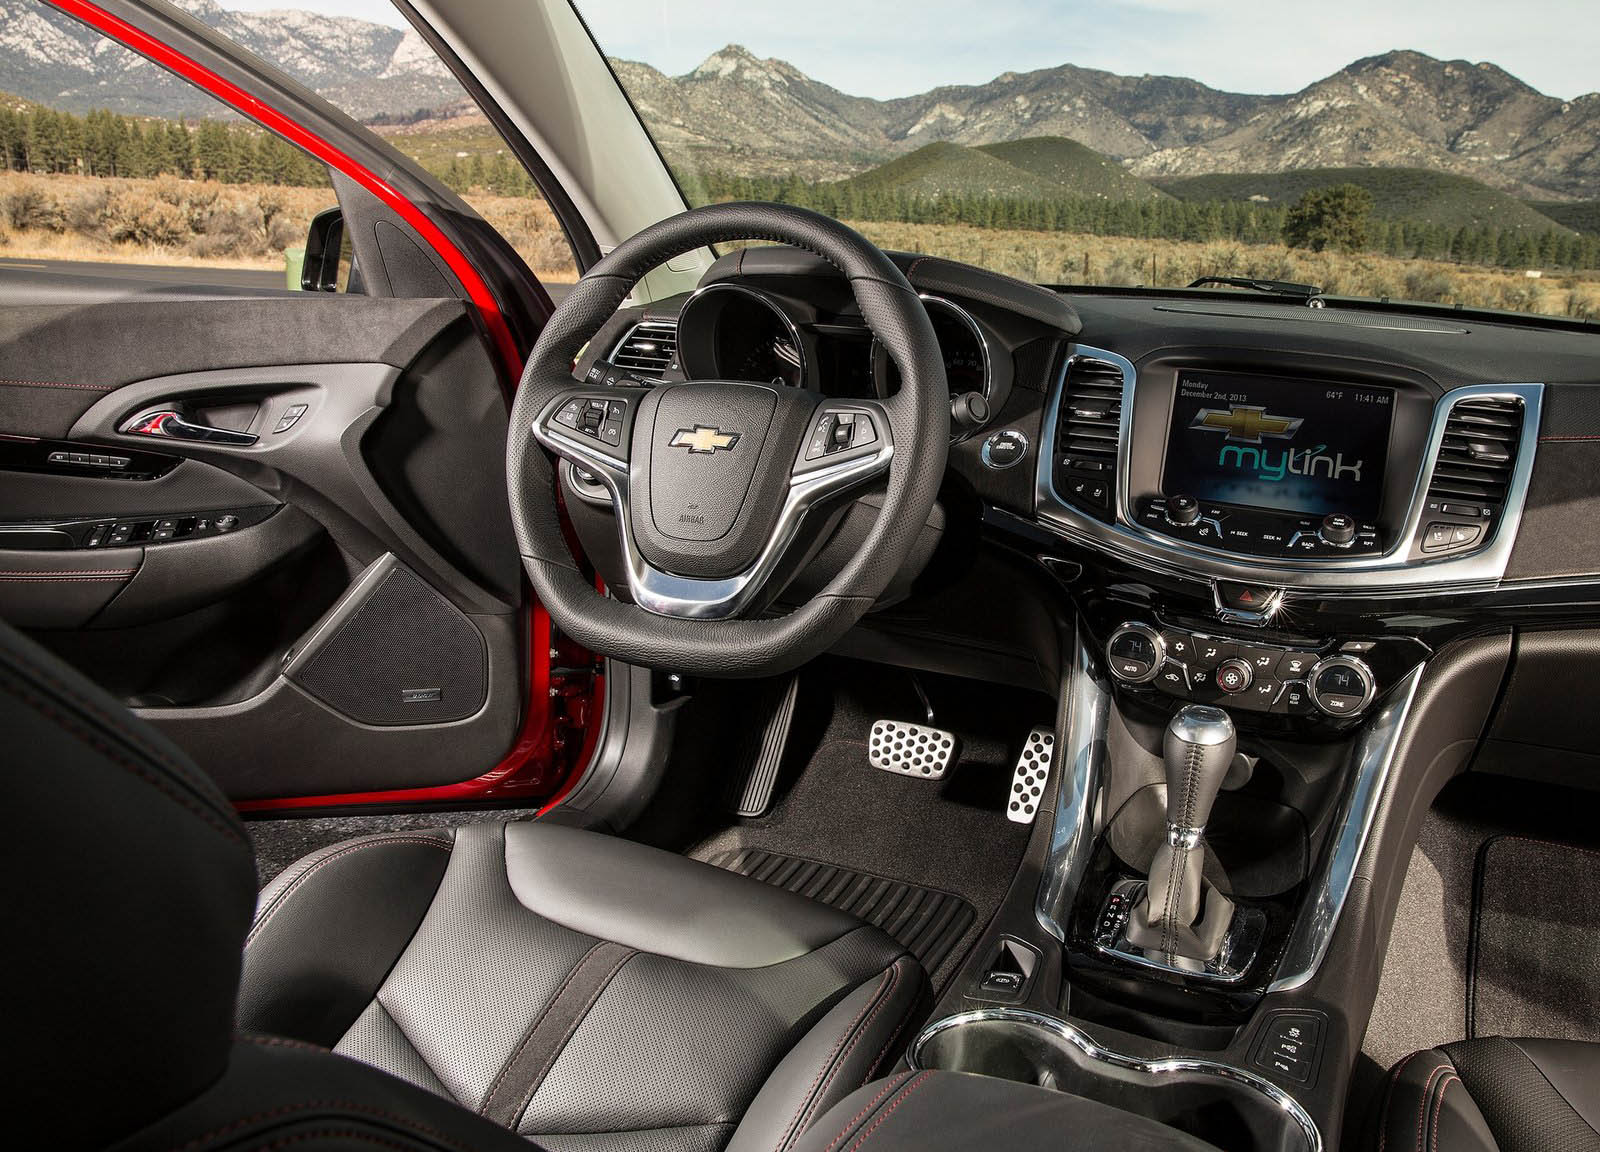 2014 chevy cruze service manual